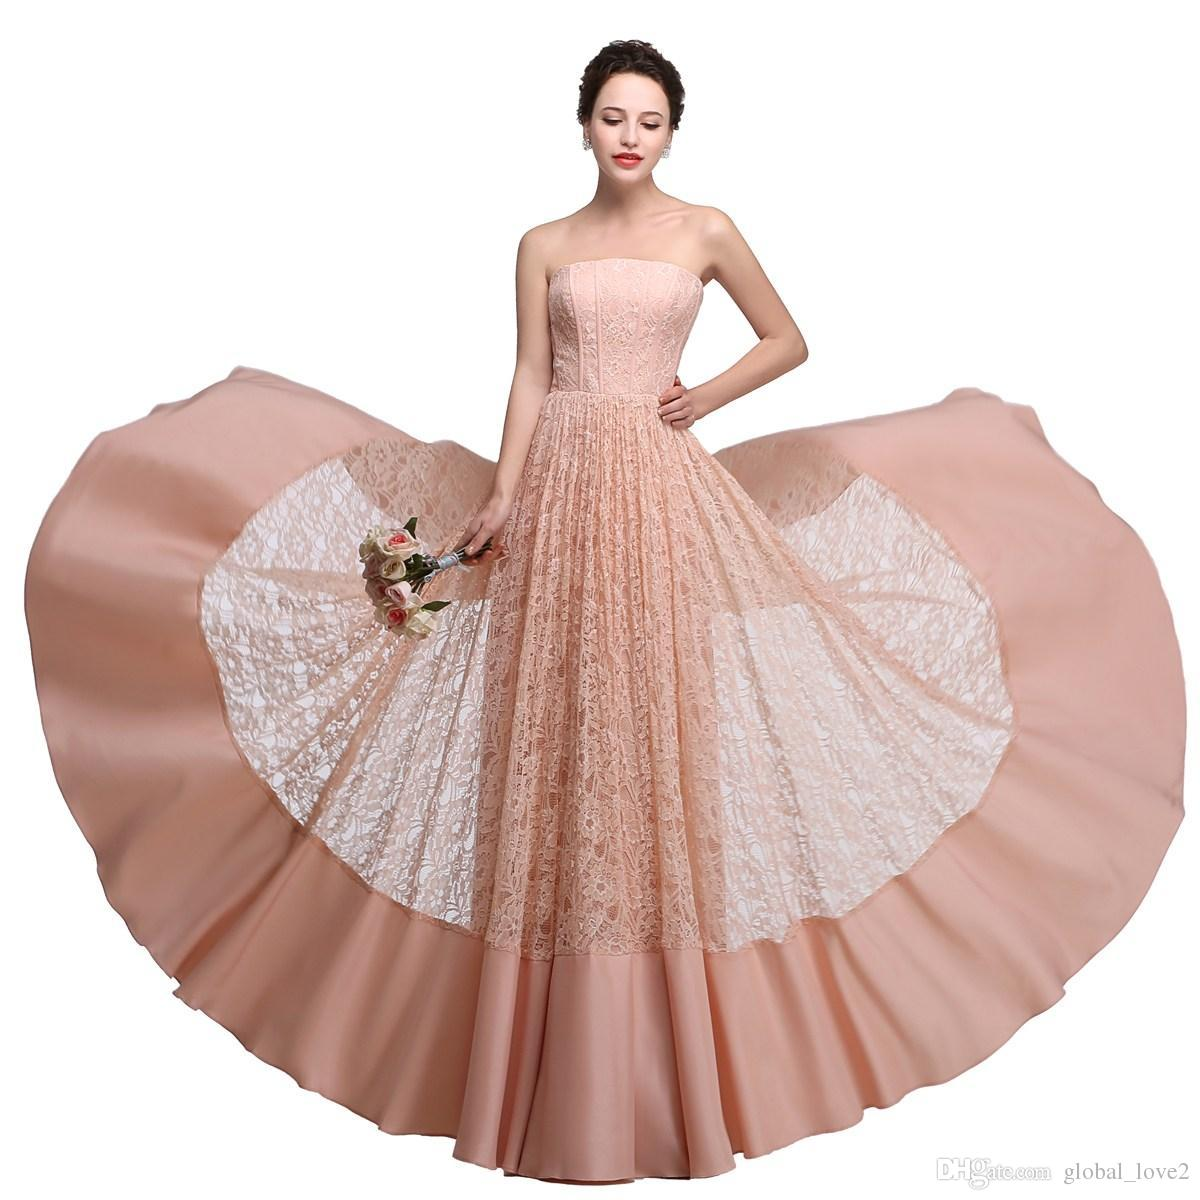 Lace long bridesmaid dresses cheap strapless pink coral bridesmaid lace long bridesmaid dresses cheap strapless pink coral bridesmaid dress formal for 2017 wedding dresses party evening beach maid of honor lace long ombrellifo Image collections